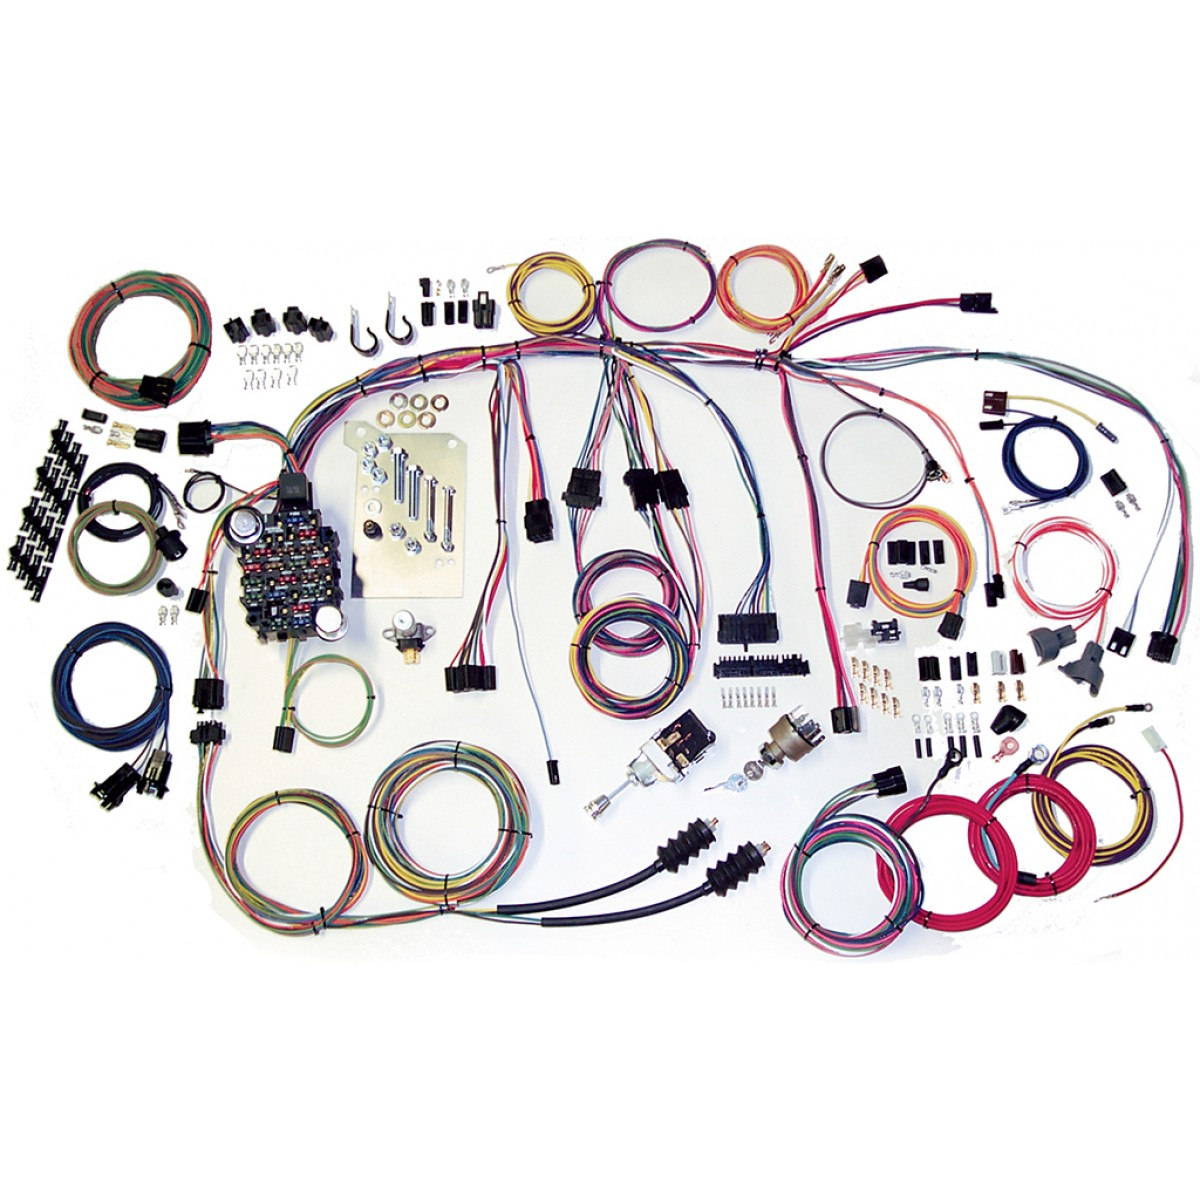 60 66 chevy truck wiring harness kit 1960 1966 chevy truck part 500560 chevy c10 c20 wiring harness chevy c10 wiring harness complete wiring harness kit 1960 1966 chevy wiring harness at crackthecode.co